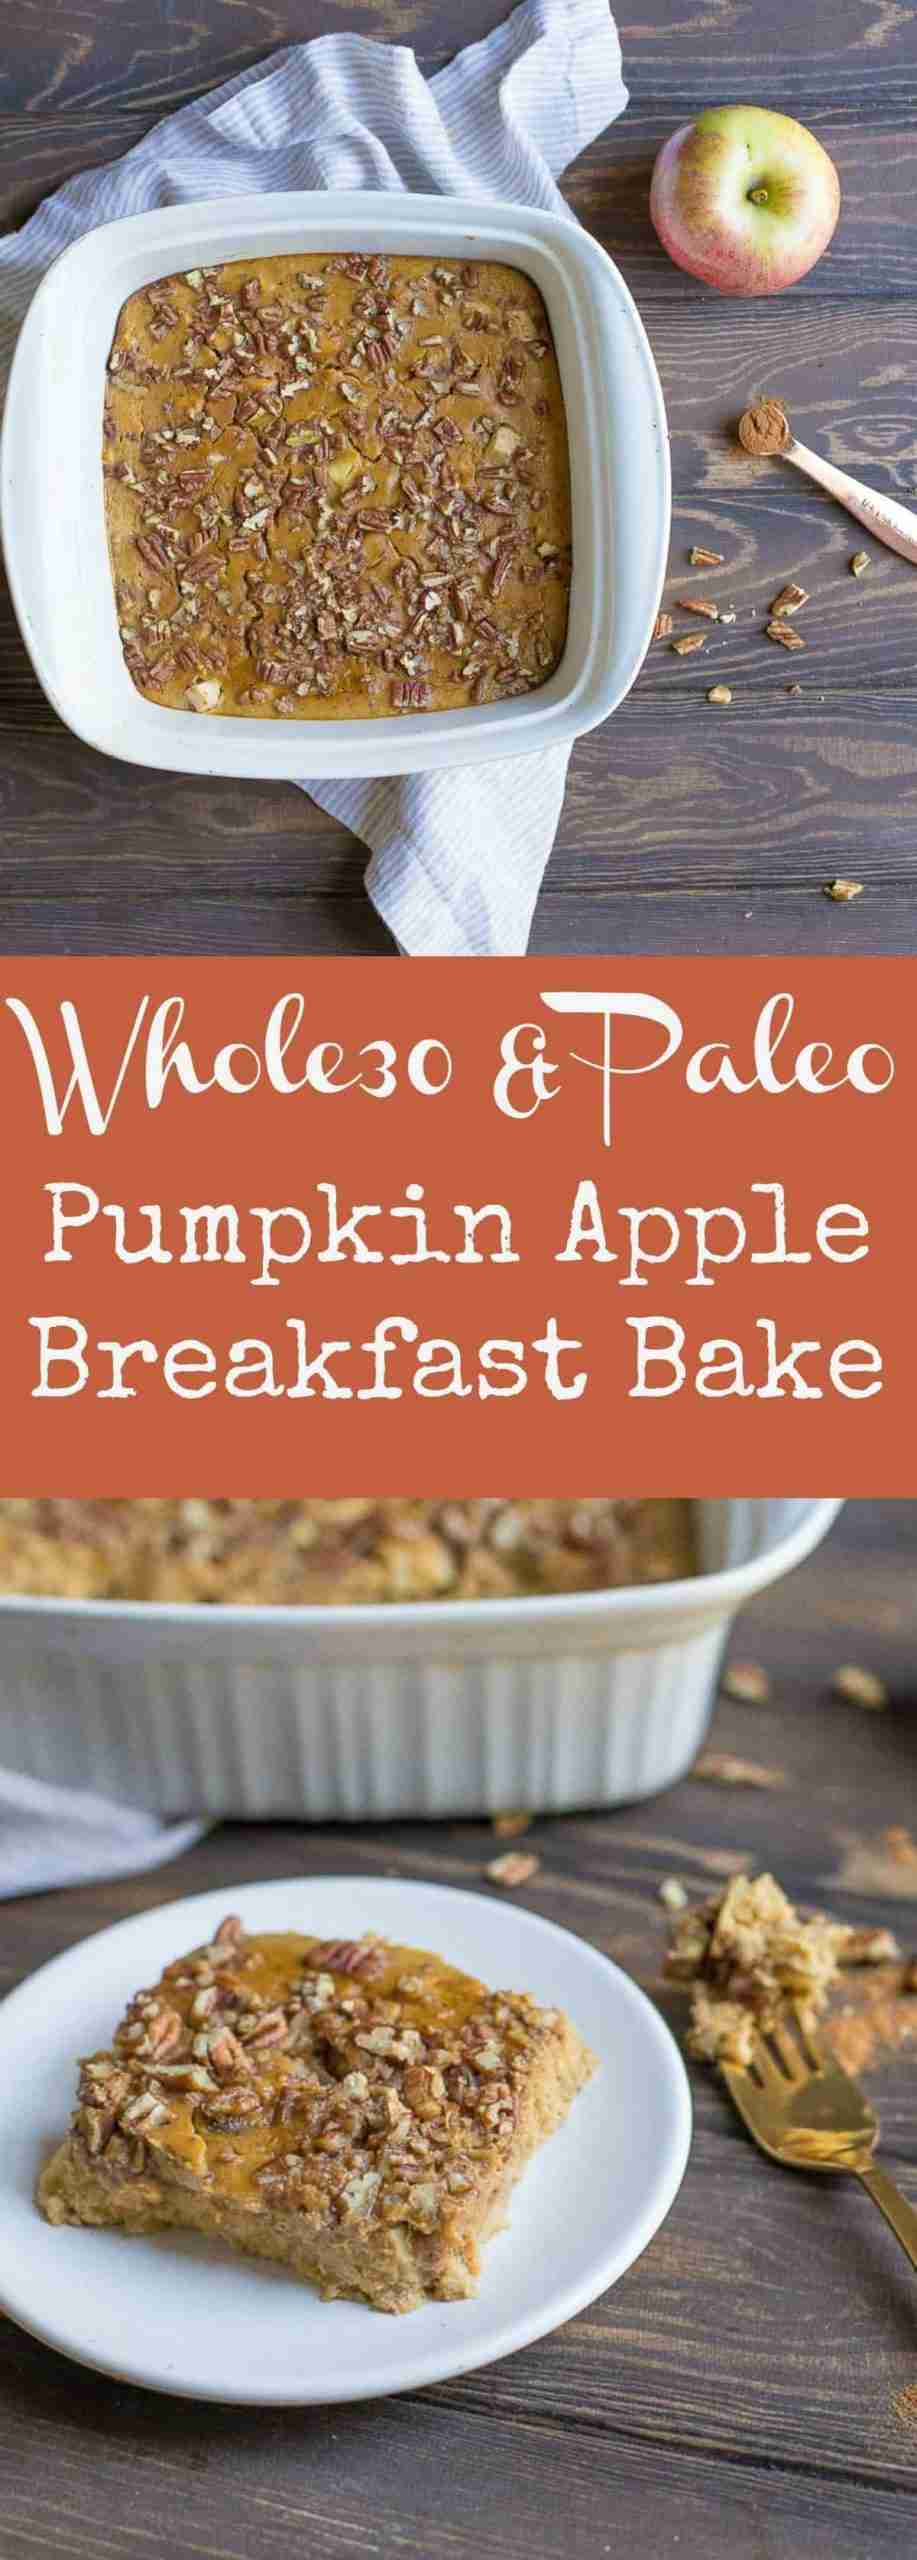 Pumpkin Apple Breakfast Bake – Wholesomelicious